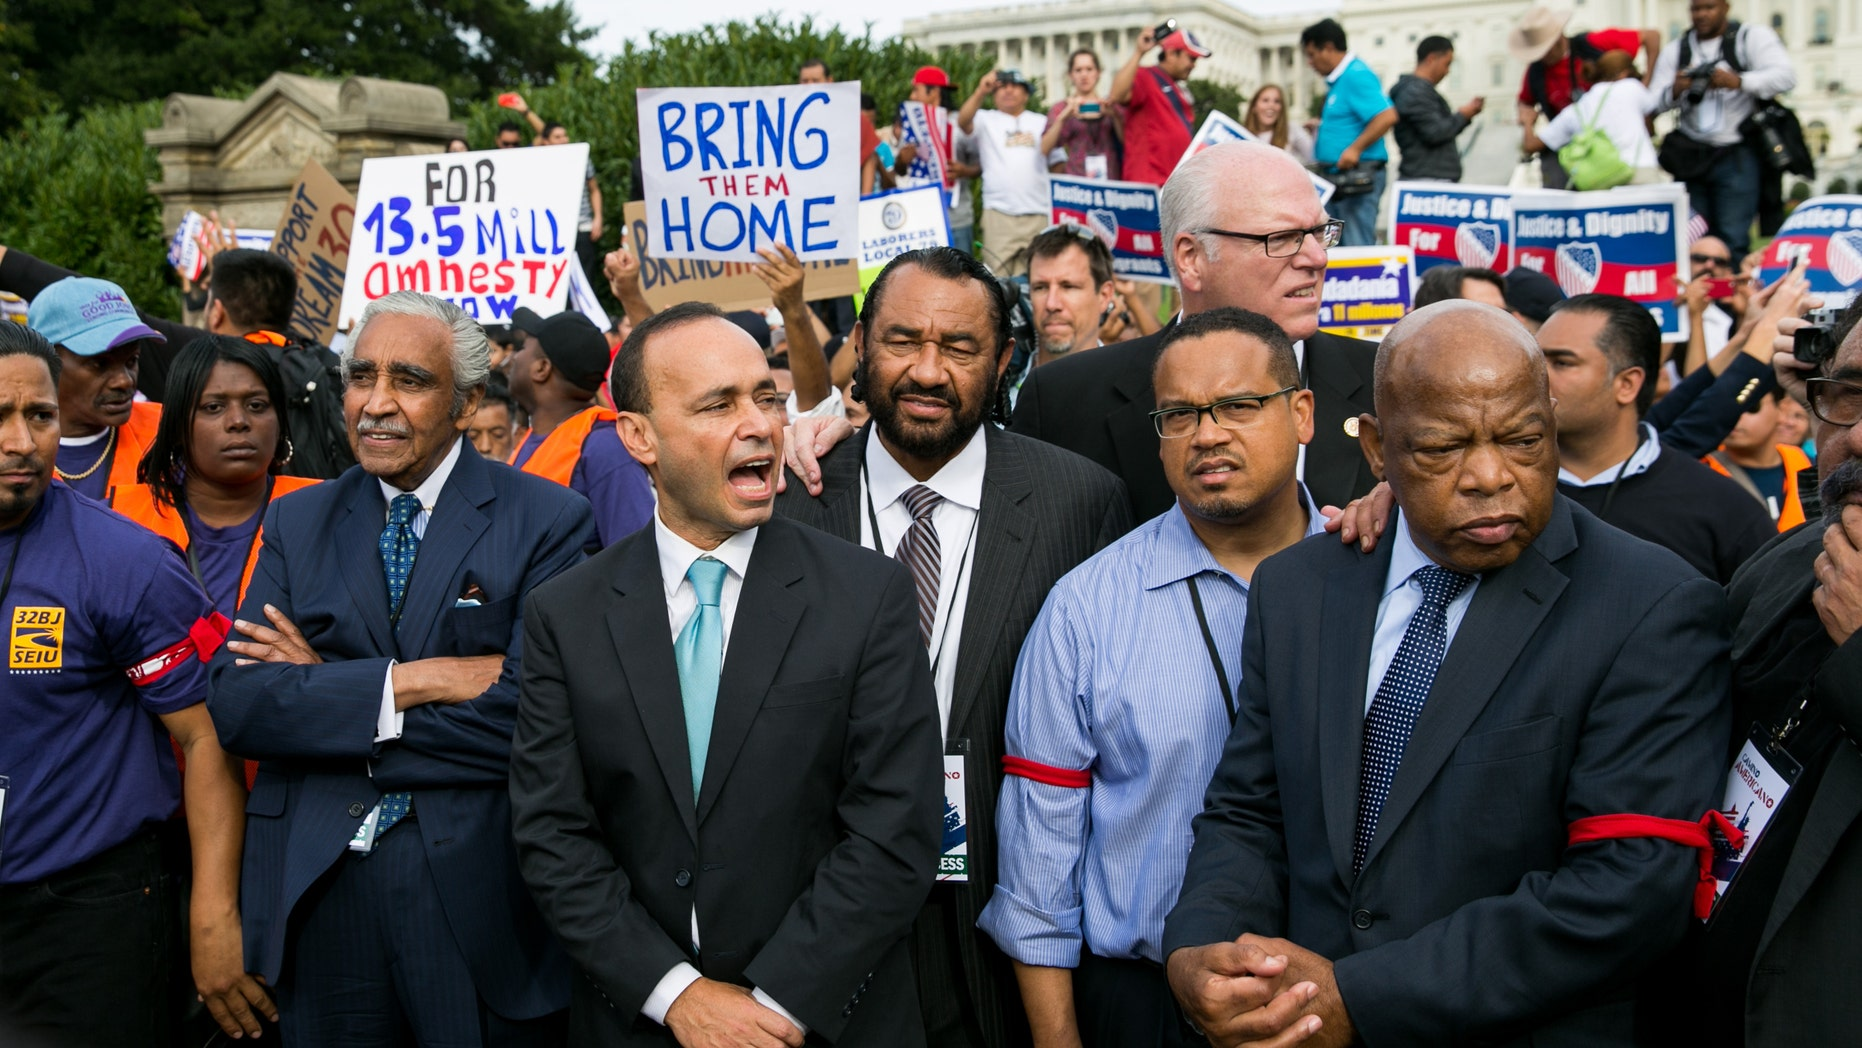 (L-R) Rep. Charles Rangel (D-NY), Rep. Luis Gutierrez (D-IL), Rep. Al Green (D-TX), Rep. Keith Ellison (D-MN) and Rep. John Lewis (D-GA) stand with immigration reform supporters in front of the U.S. Capitol.